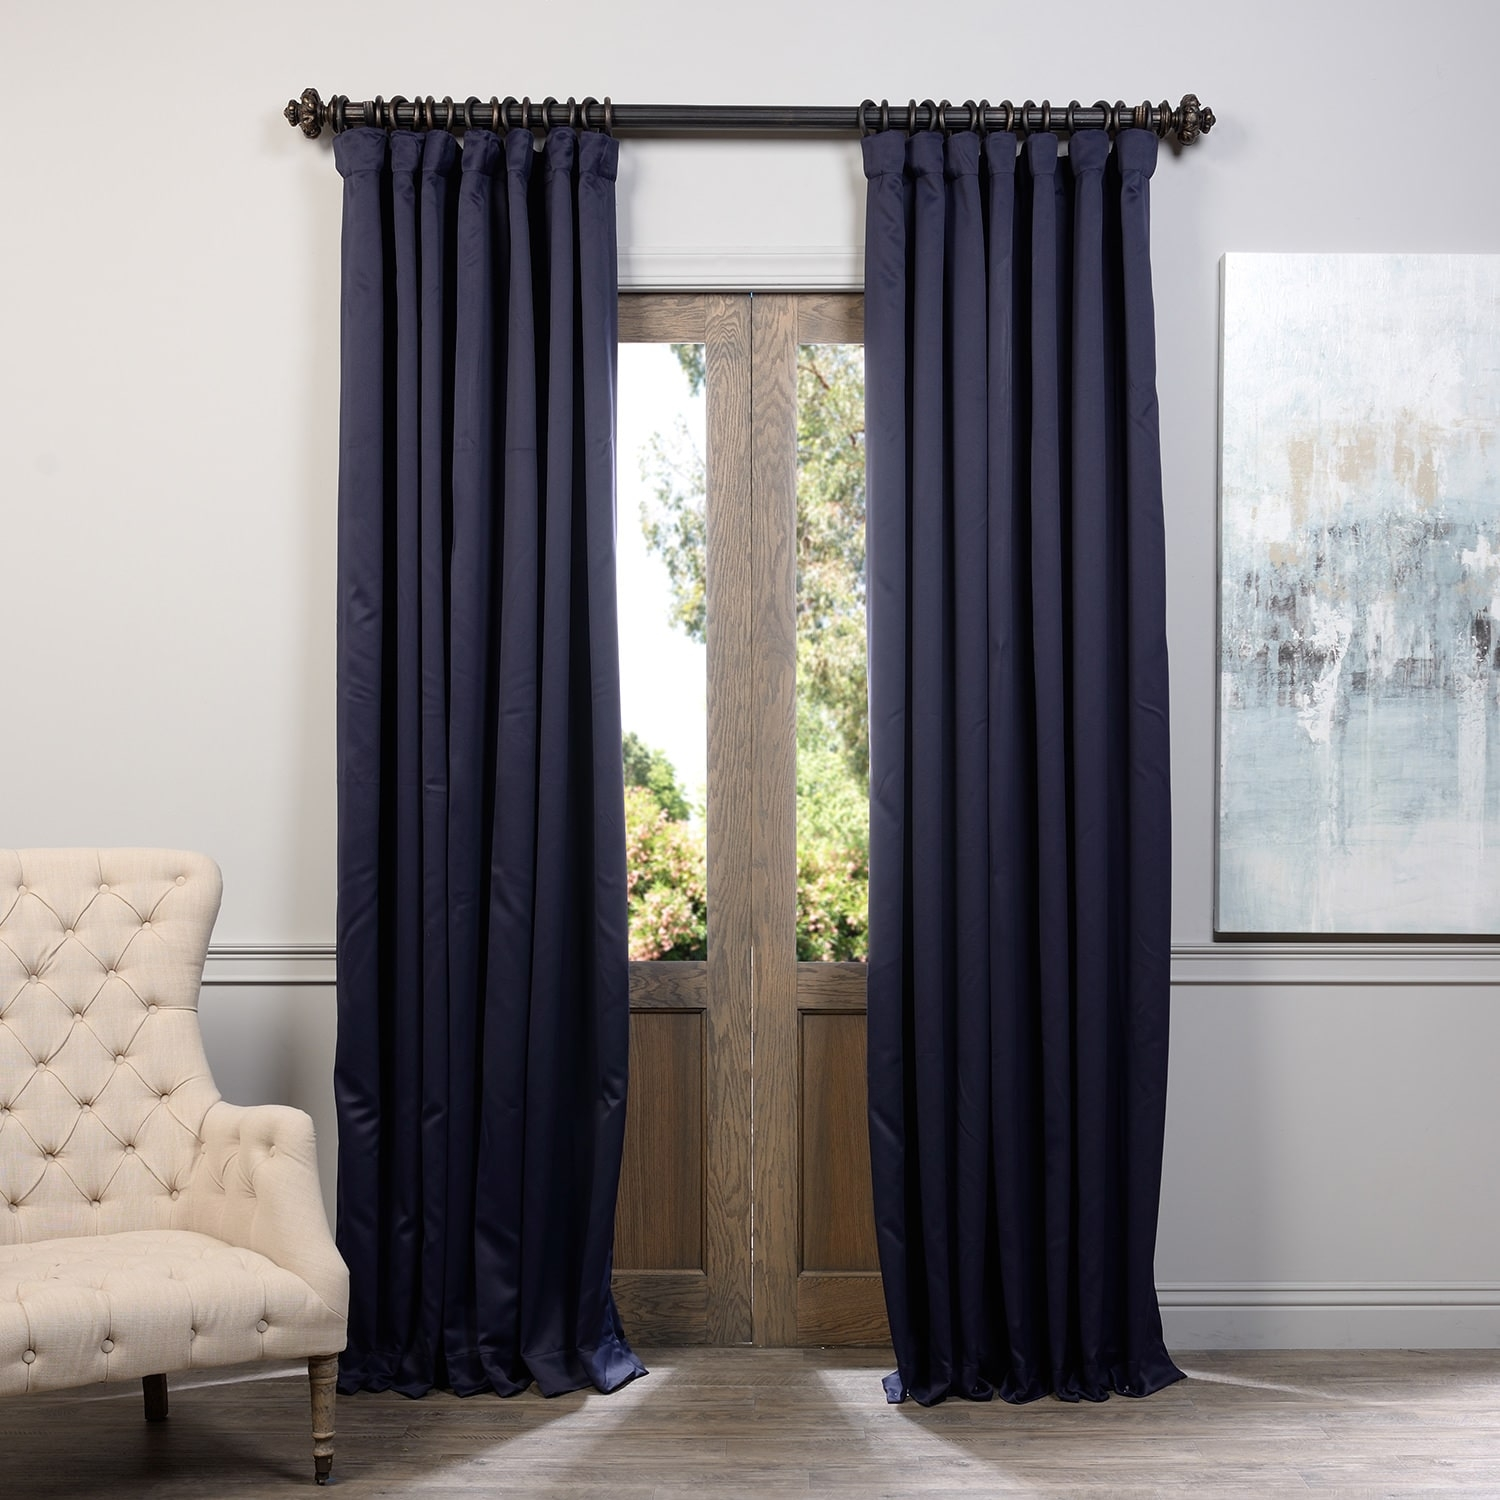 Lofty Inspiration Blackout Curtains 108 Inches Blackout Curtains Within Long Drop Curtains (View 6 of 15)